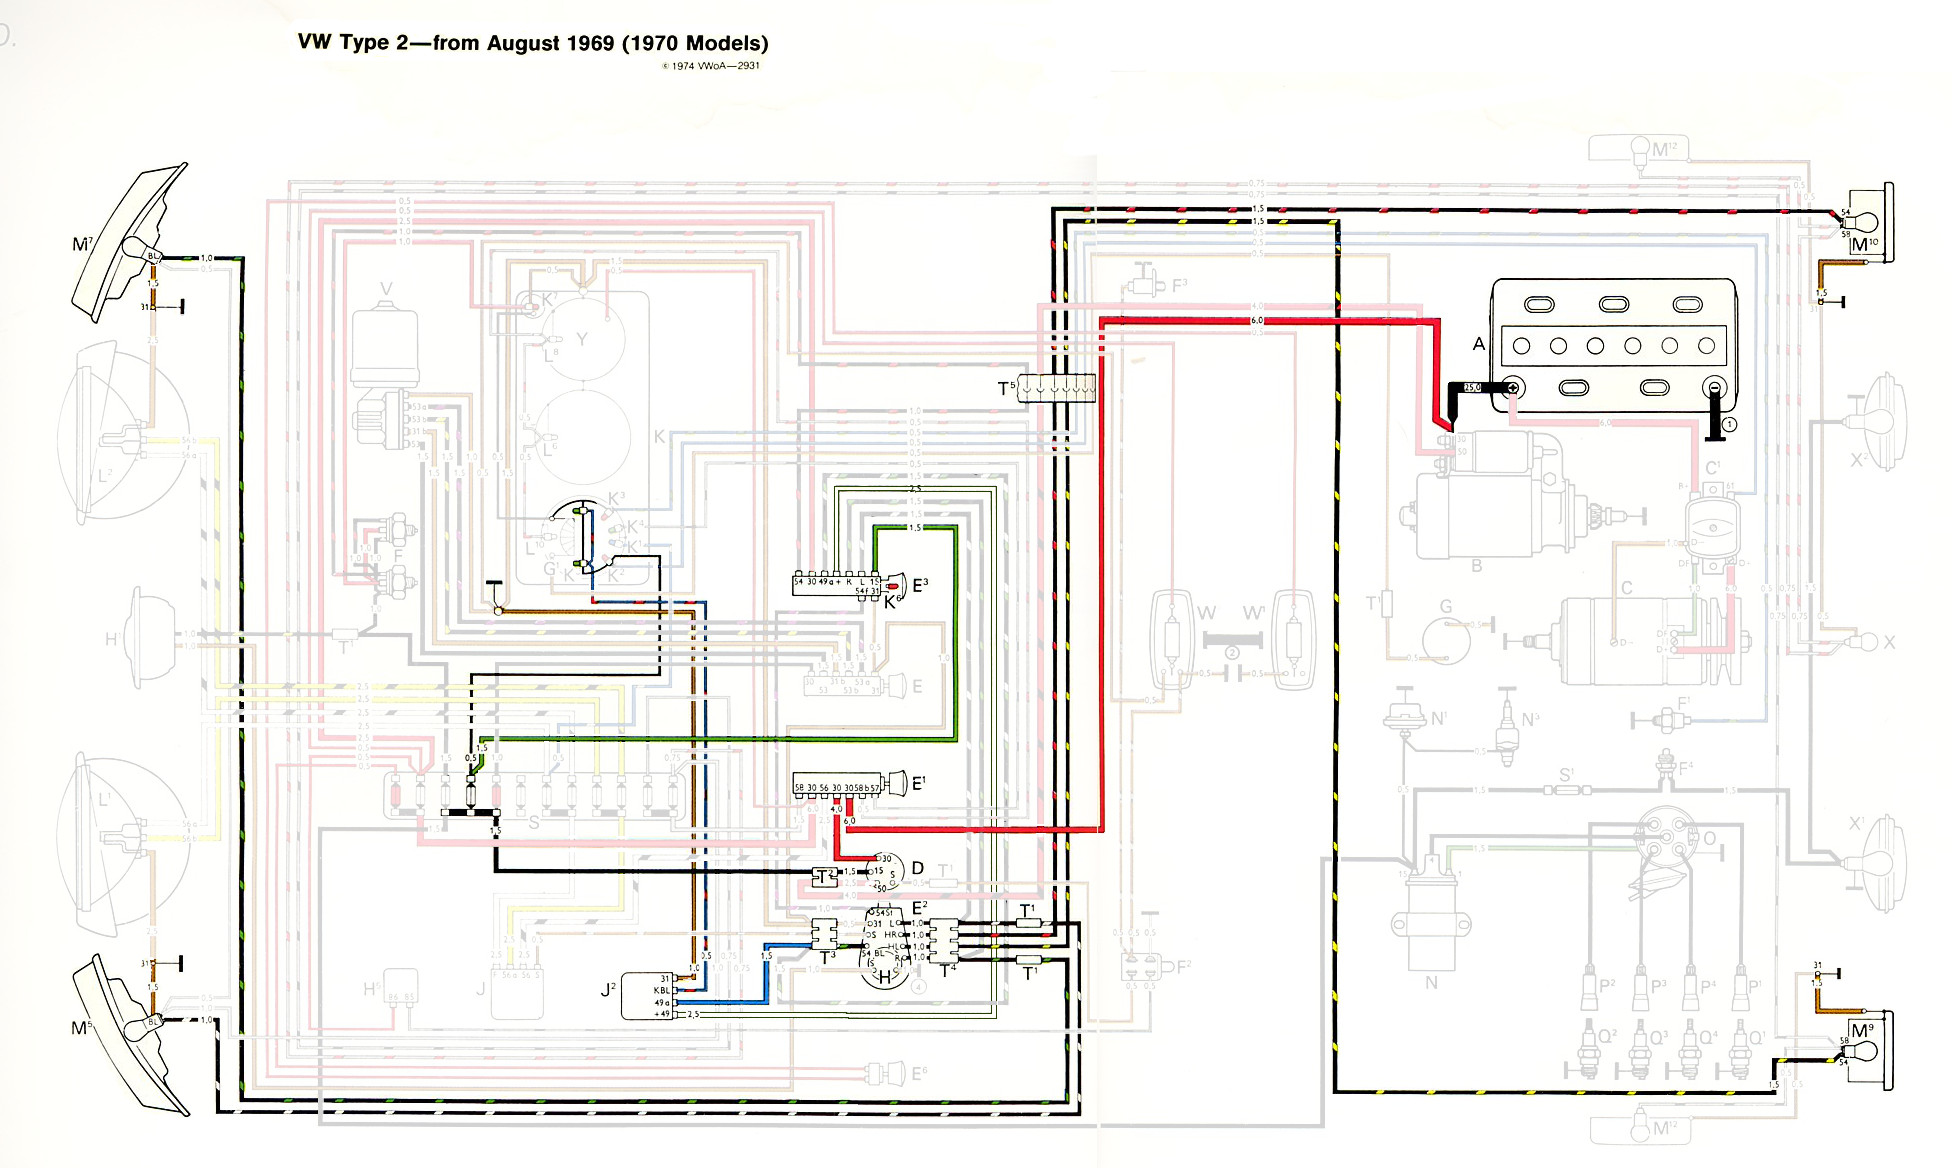 1970bus_signals thesamba com type 2 wiring diagrams Basic Turn Signal Wiring Diagram at n-0.co